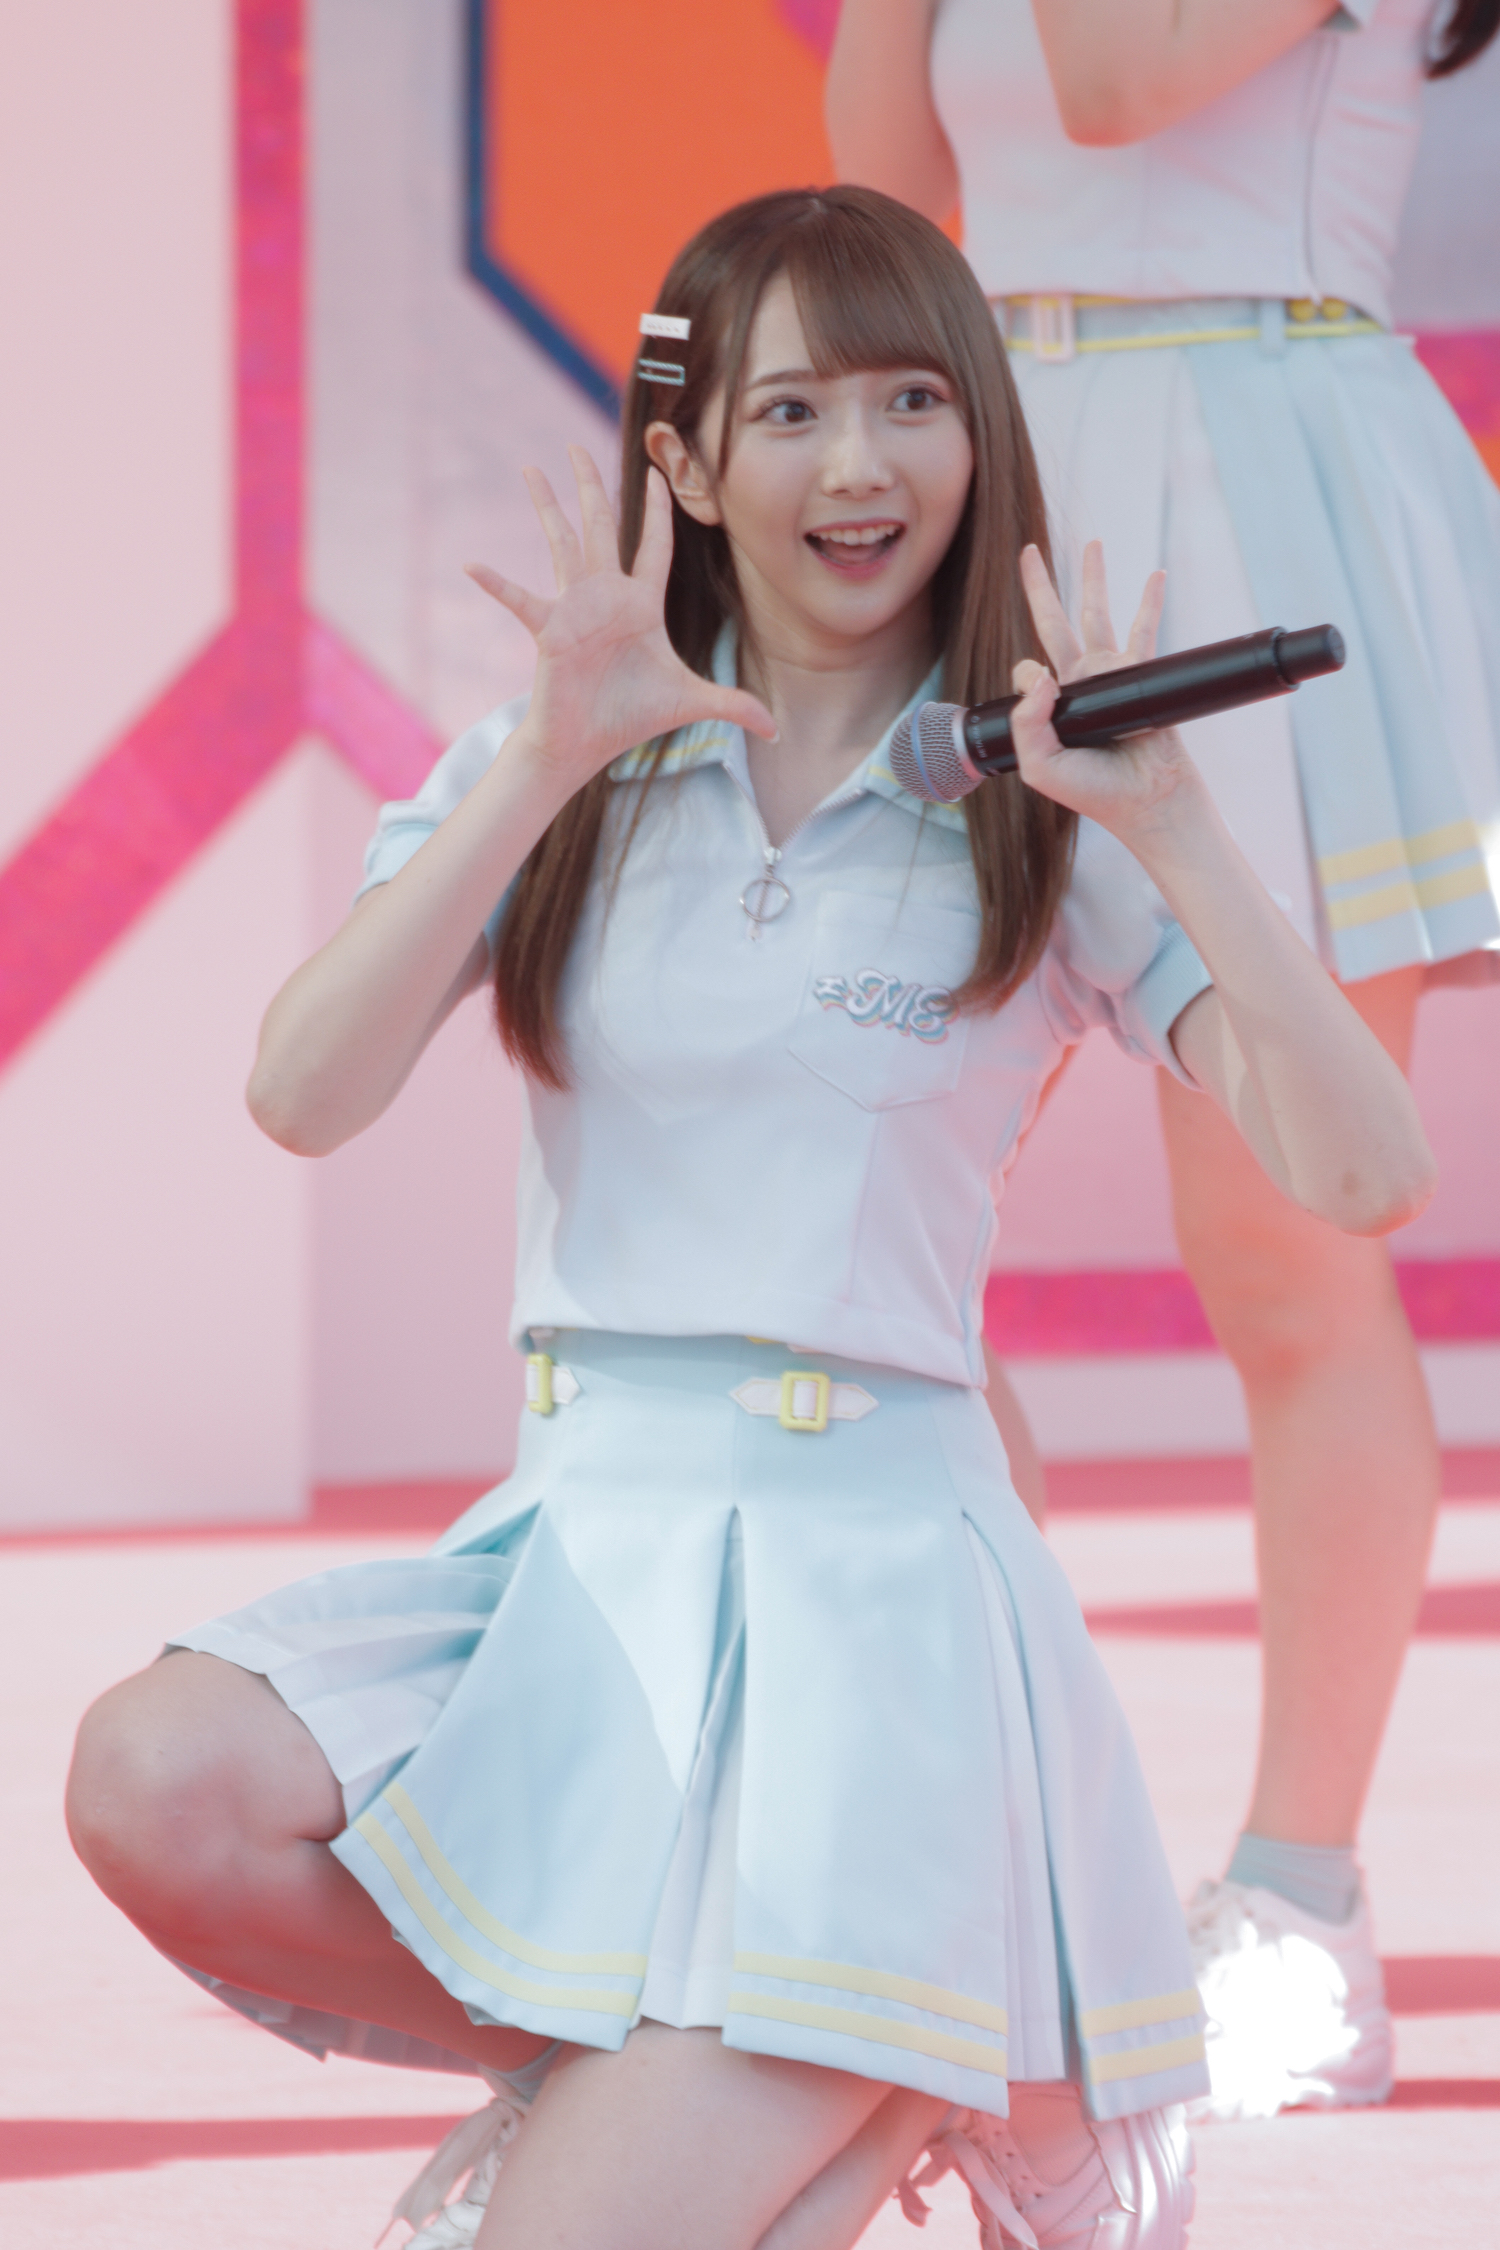 ≠ME/TOKYO IDOL FESTIVAL オンライン 2020にて/撮影:ACTRESS PRESS編集部(2020年10月)